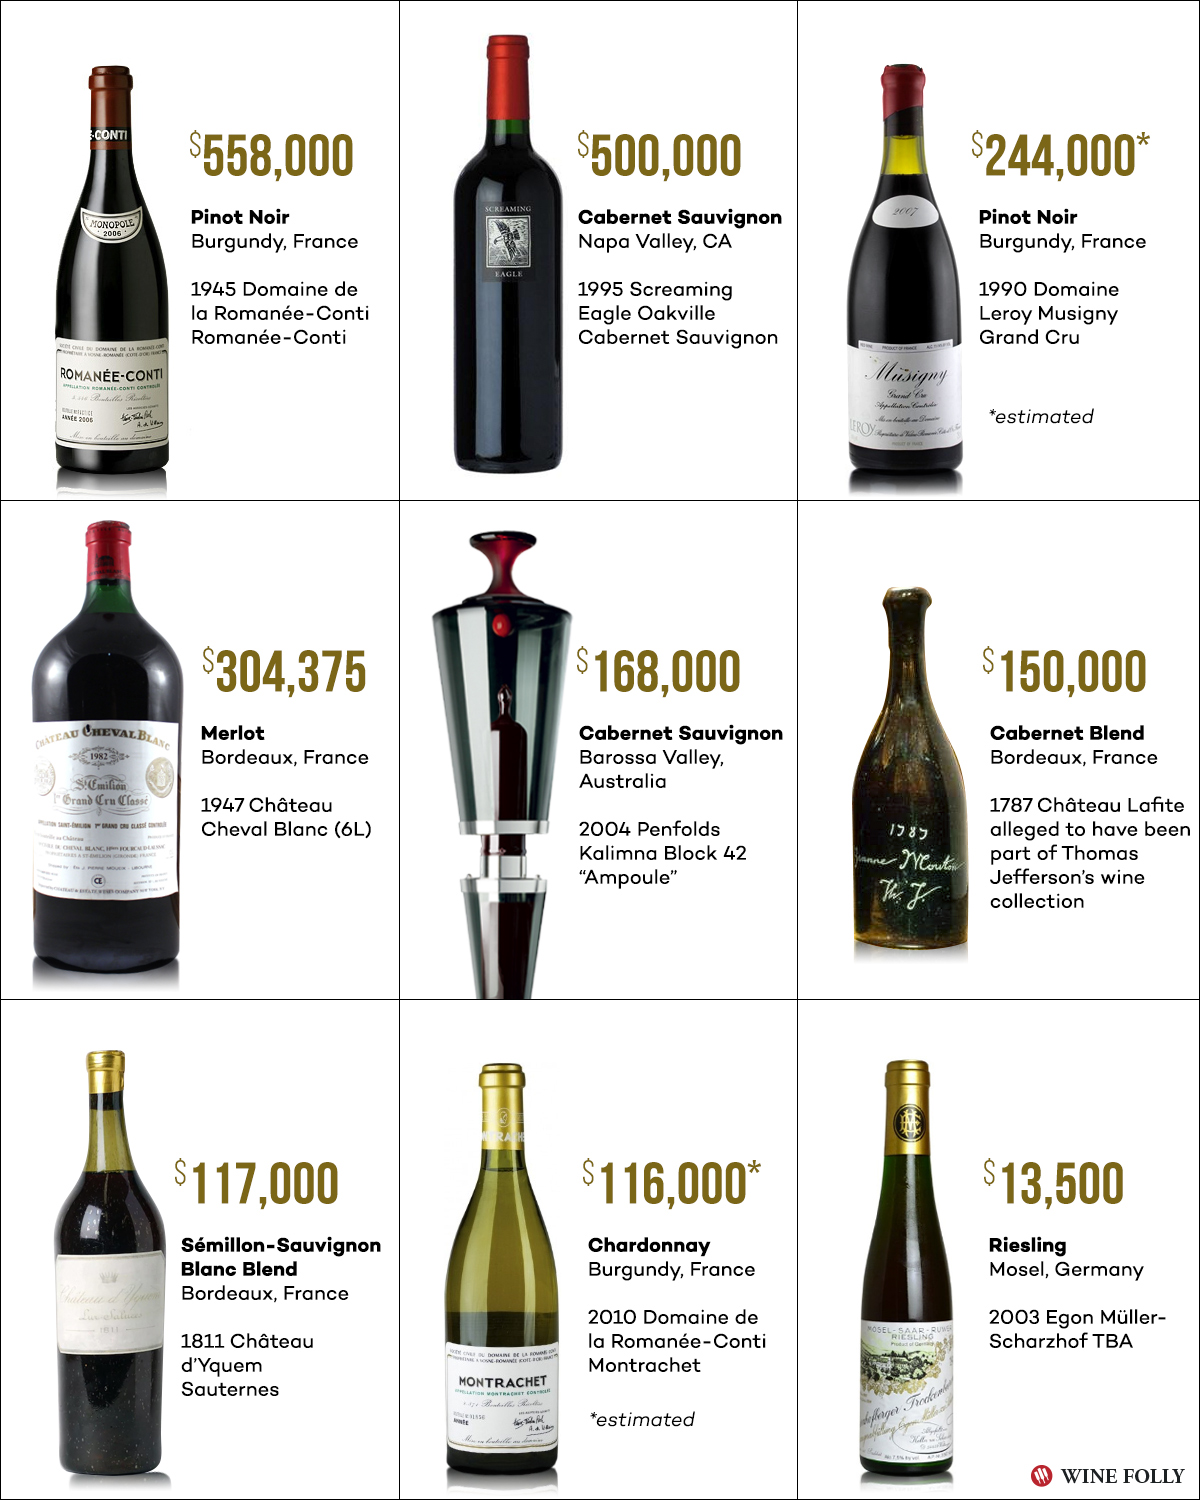 9 of the most expensive wines in the the world